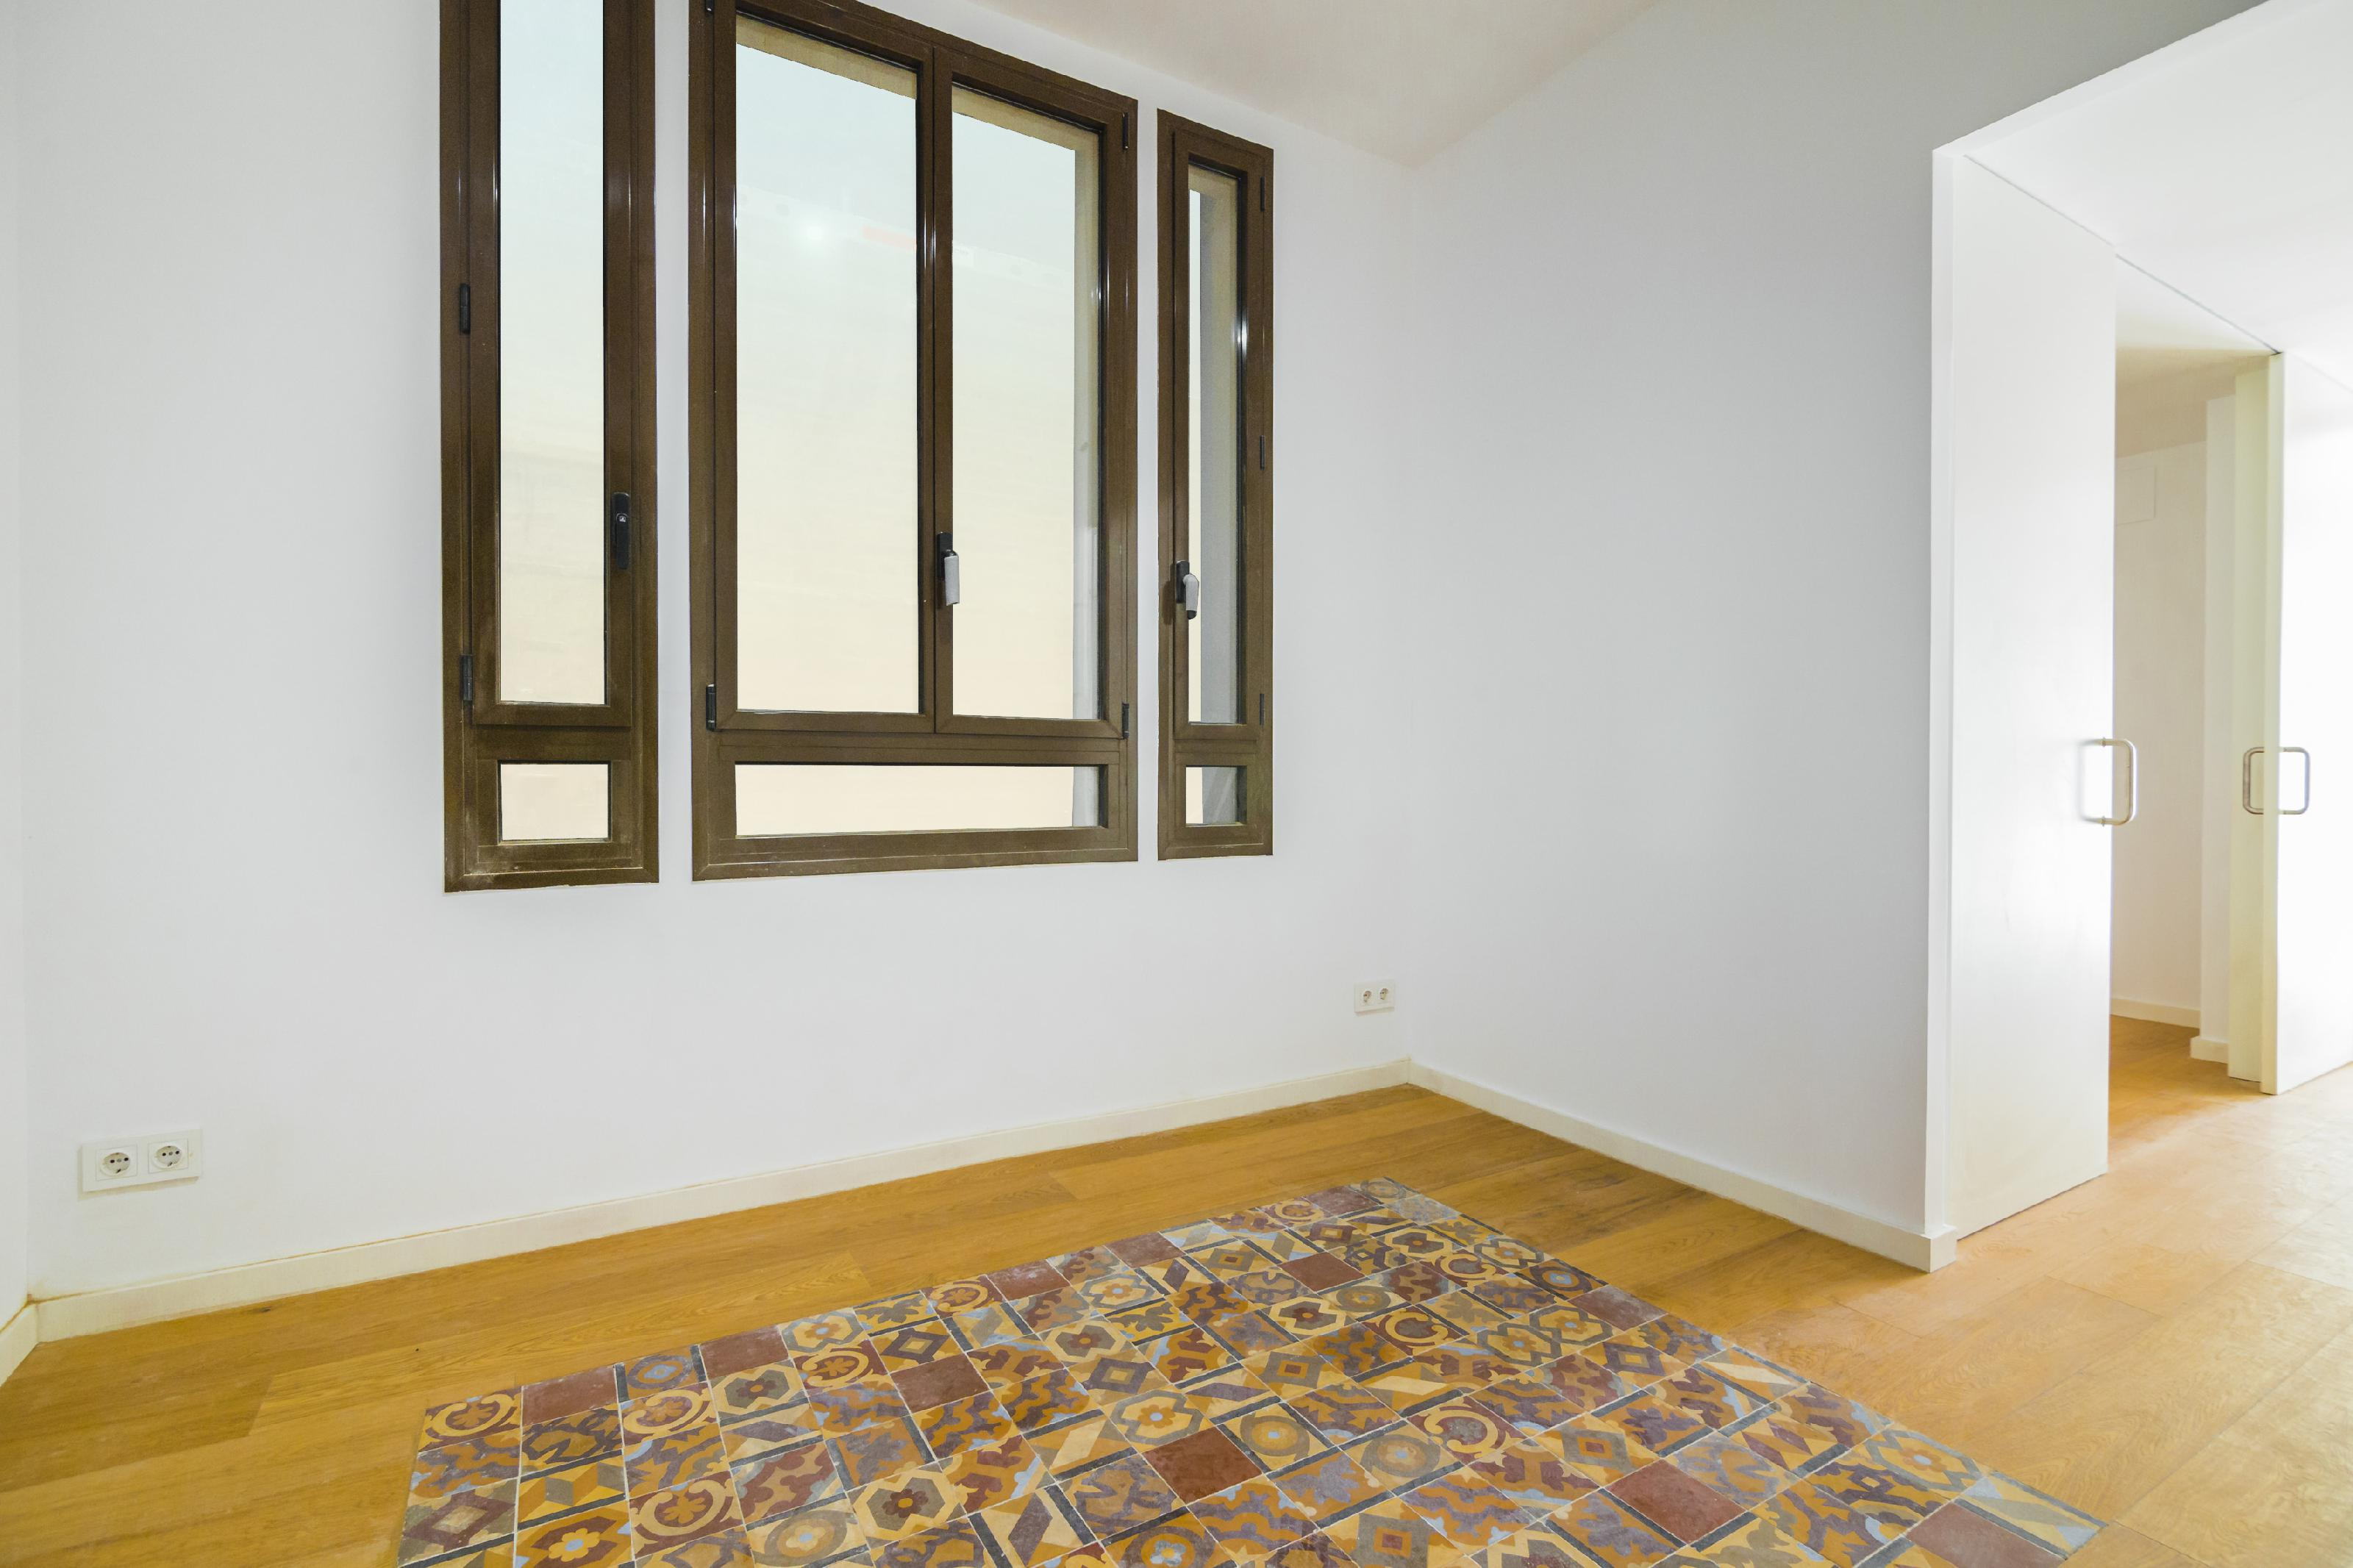 173872 Apartment for sale in Eixample, Old Left Eixample 9